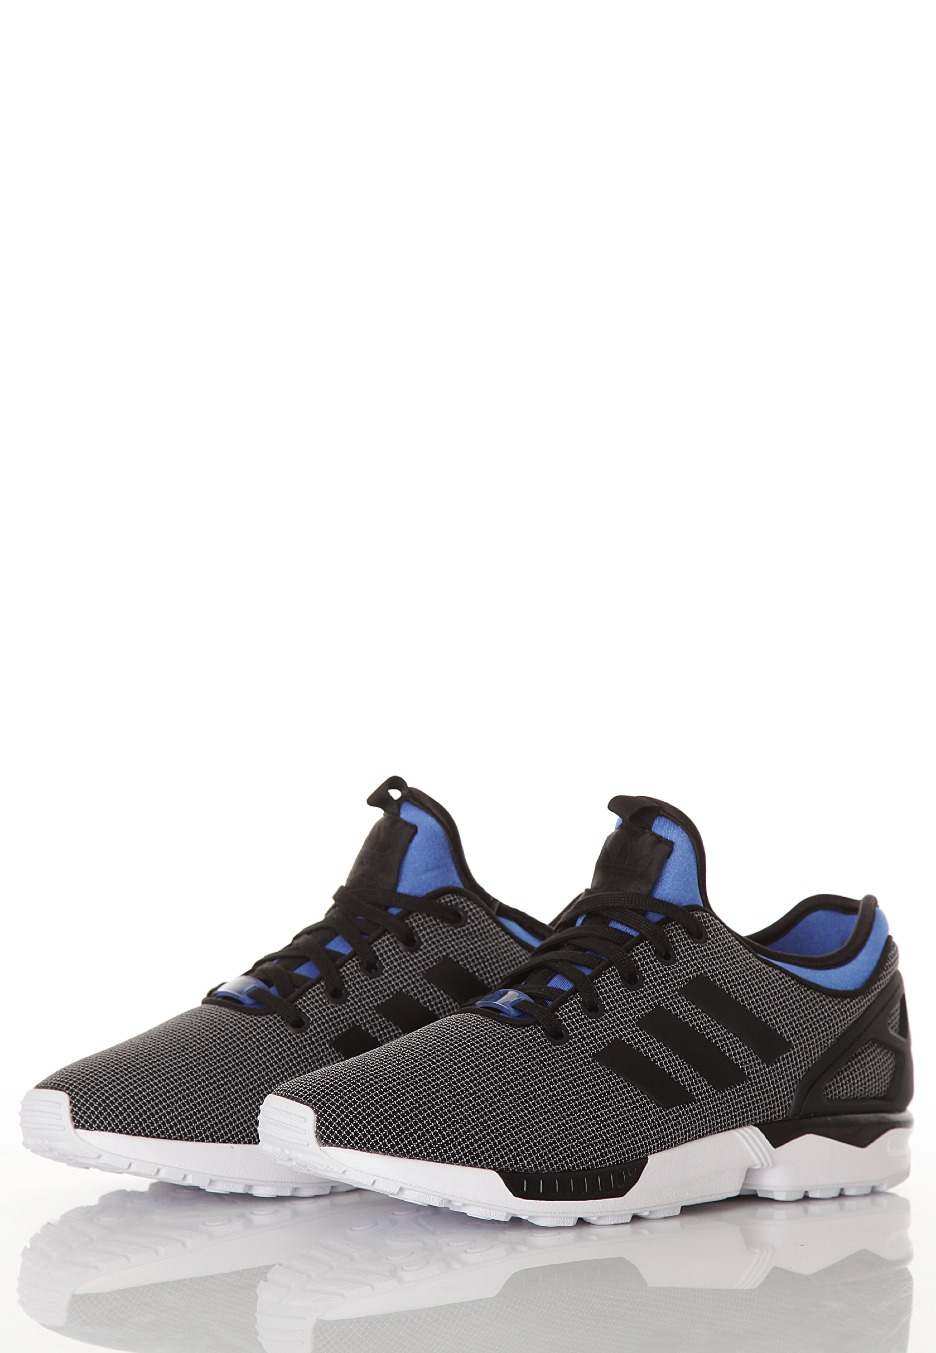 cdd74b337f55b ... italy adidas zx flux nps black black pool blue shoes e15d4 5b2f1